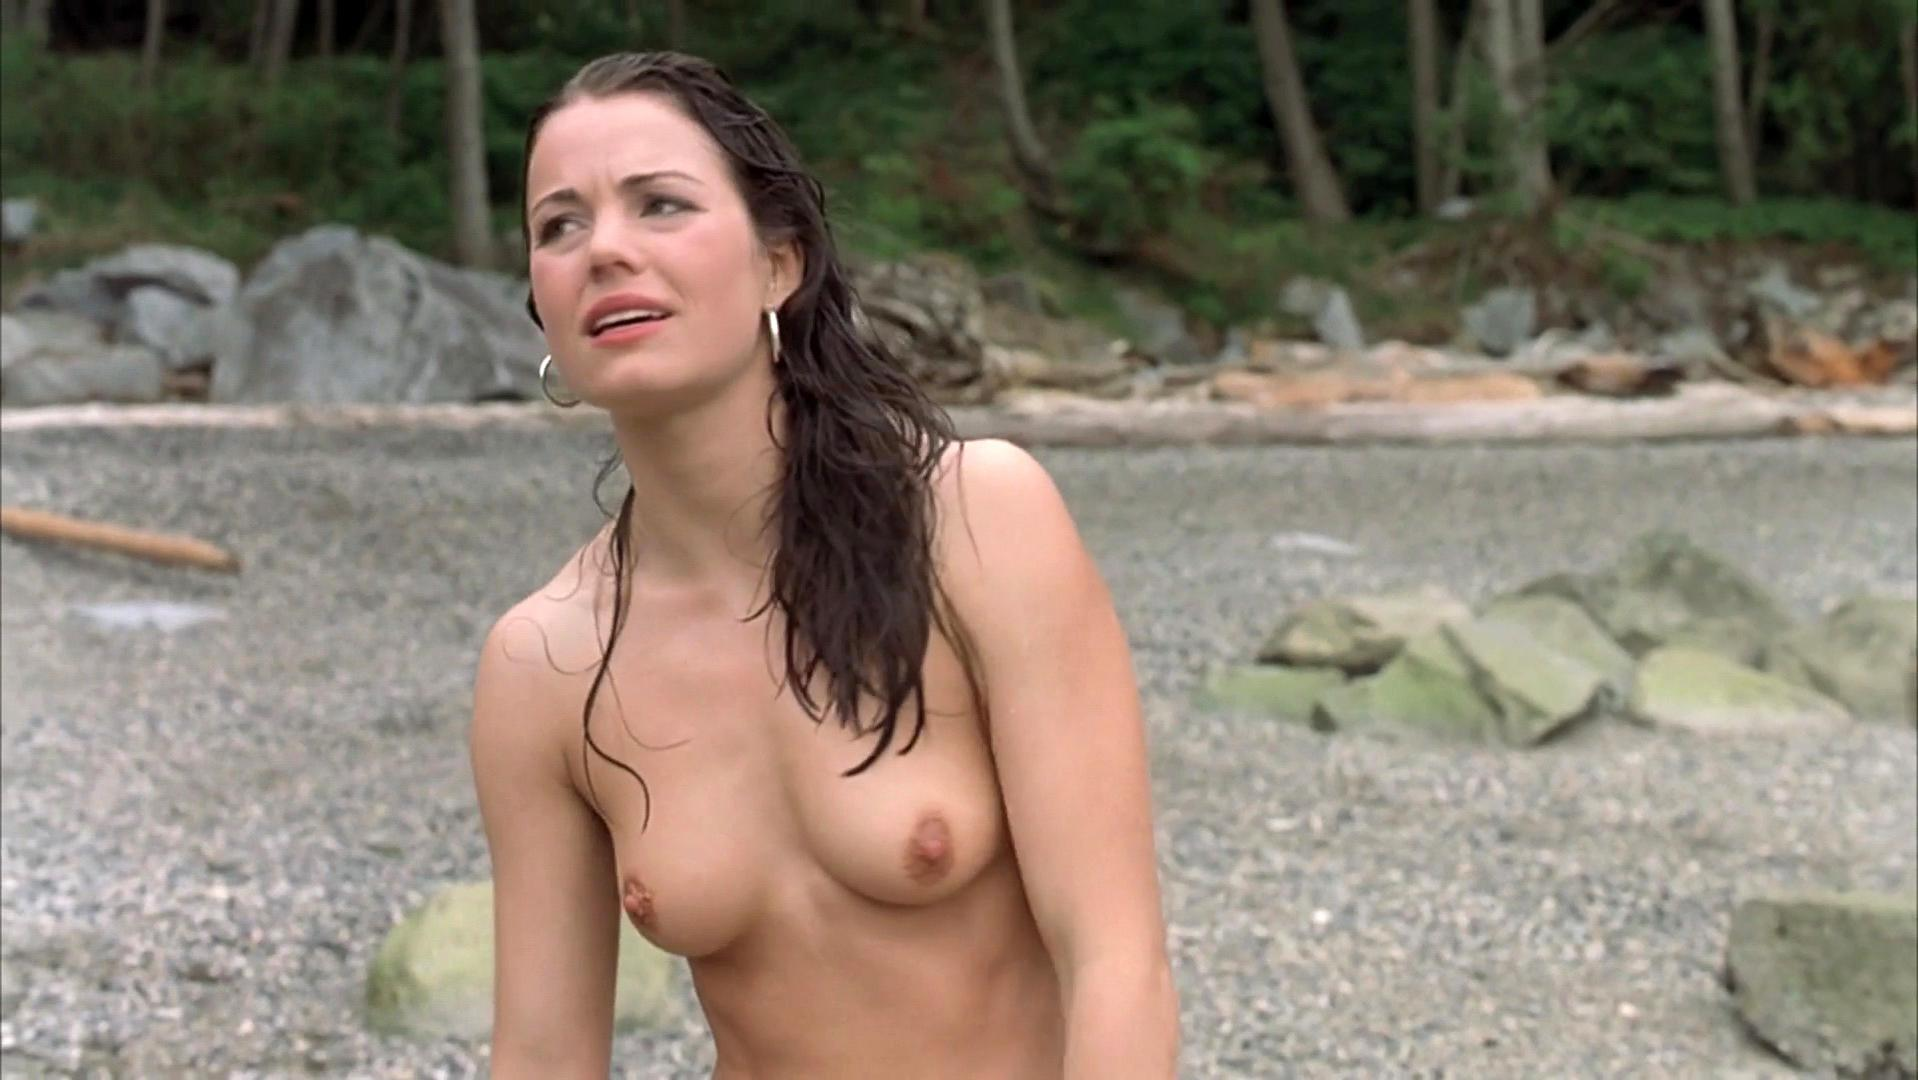 Pity, that Erica durance nude right